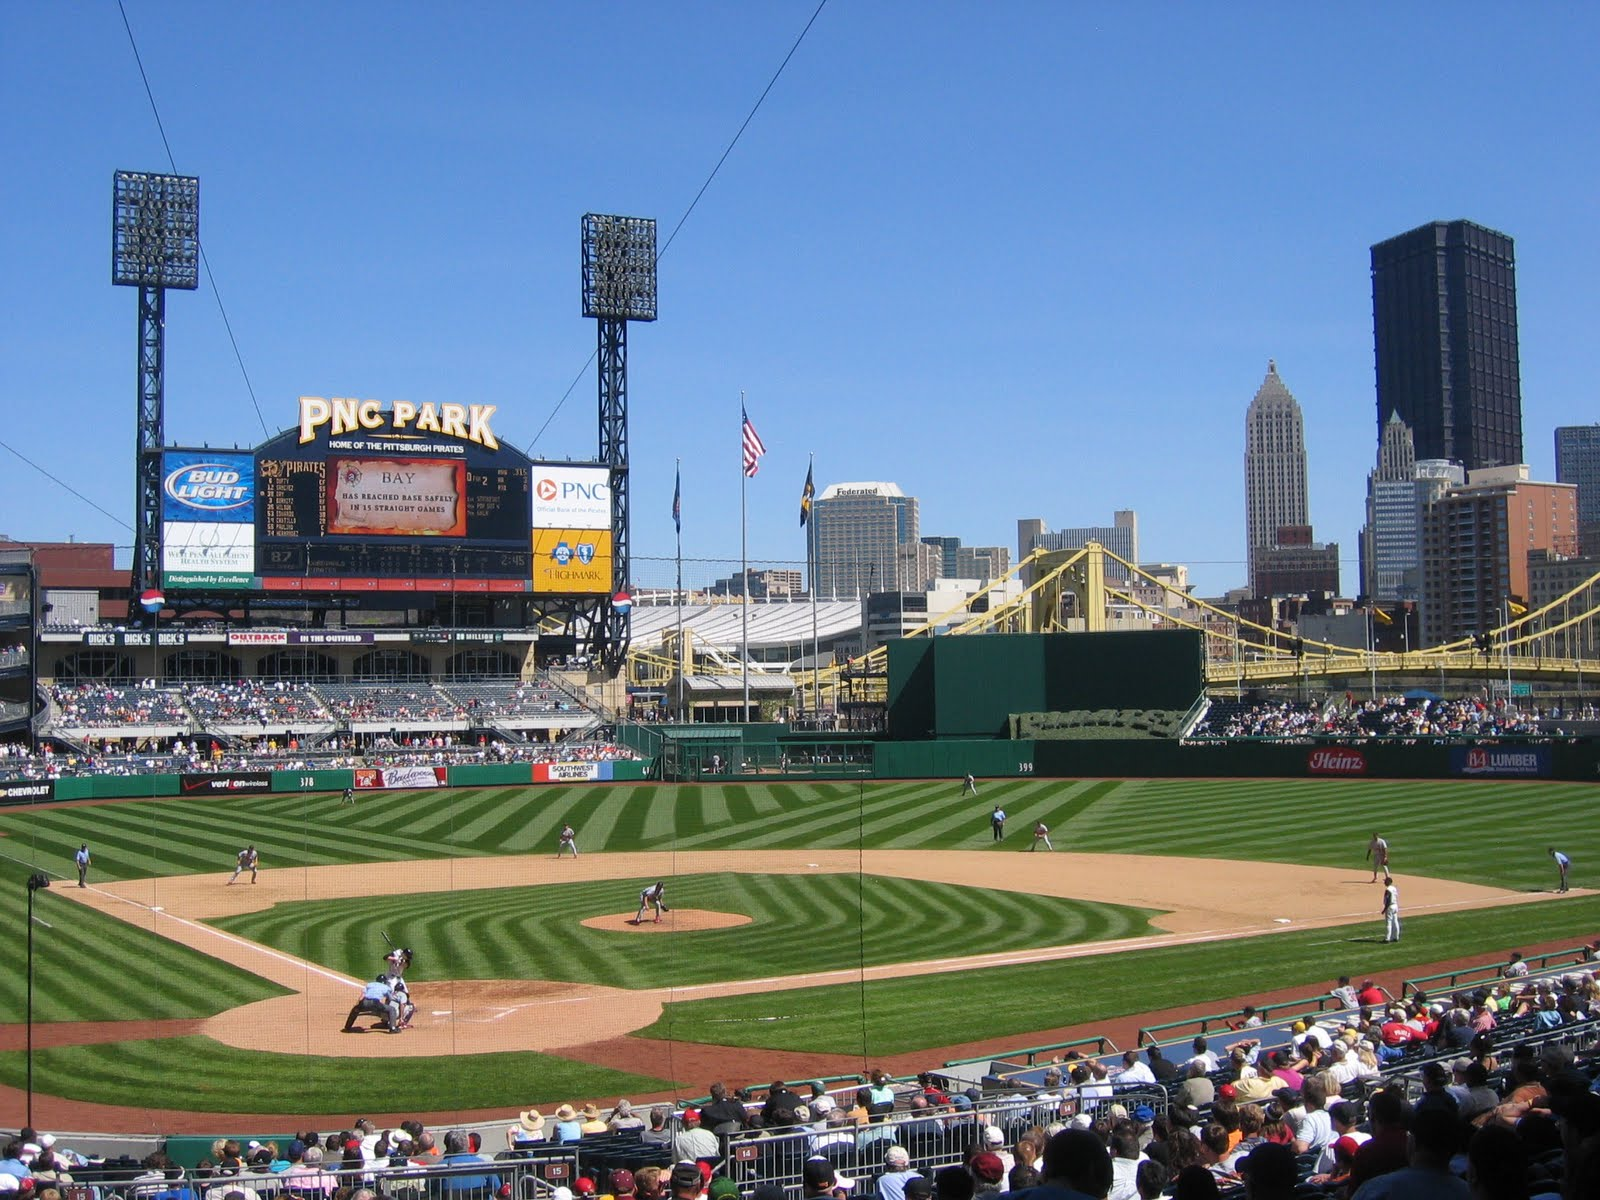 PITTSBURGH O Going To A Baseball Game In Pittsburgh Is Nothing Like Contest Here At Busch Stadium